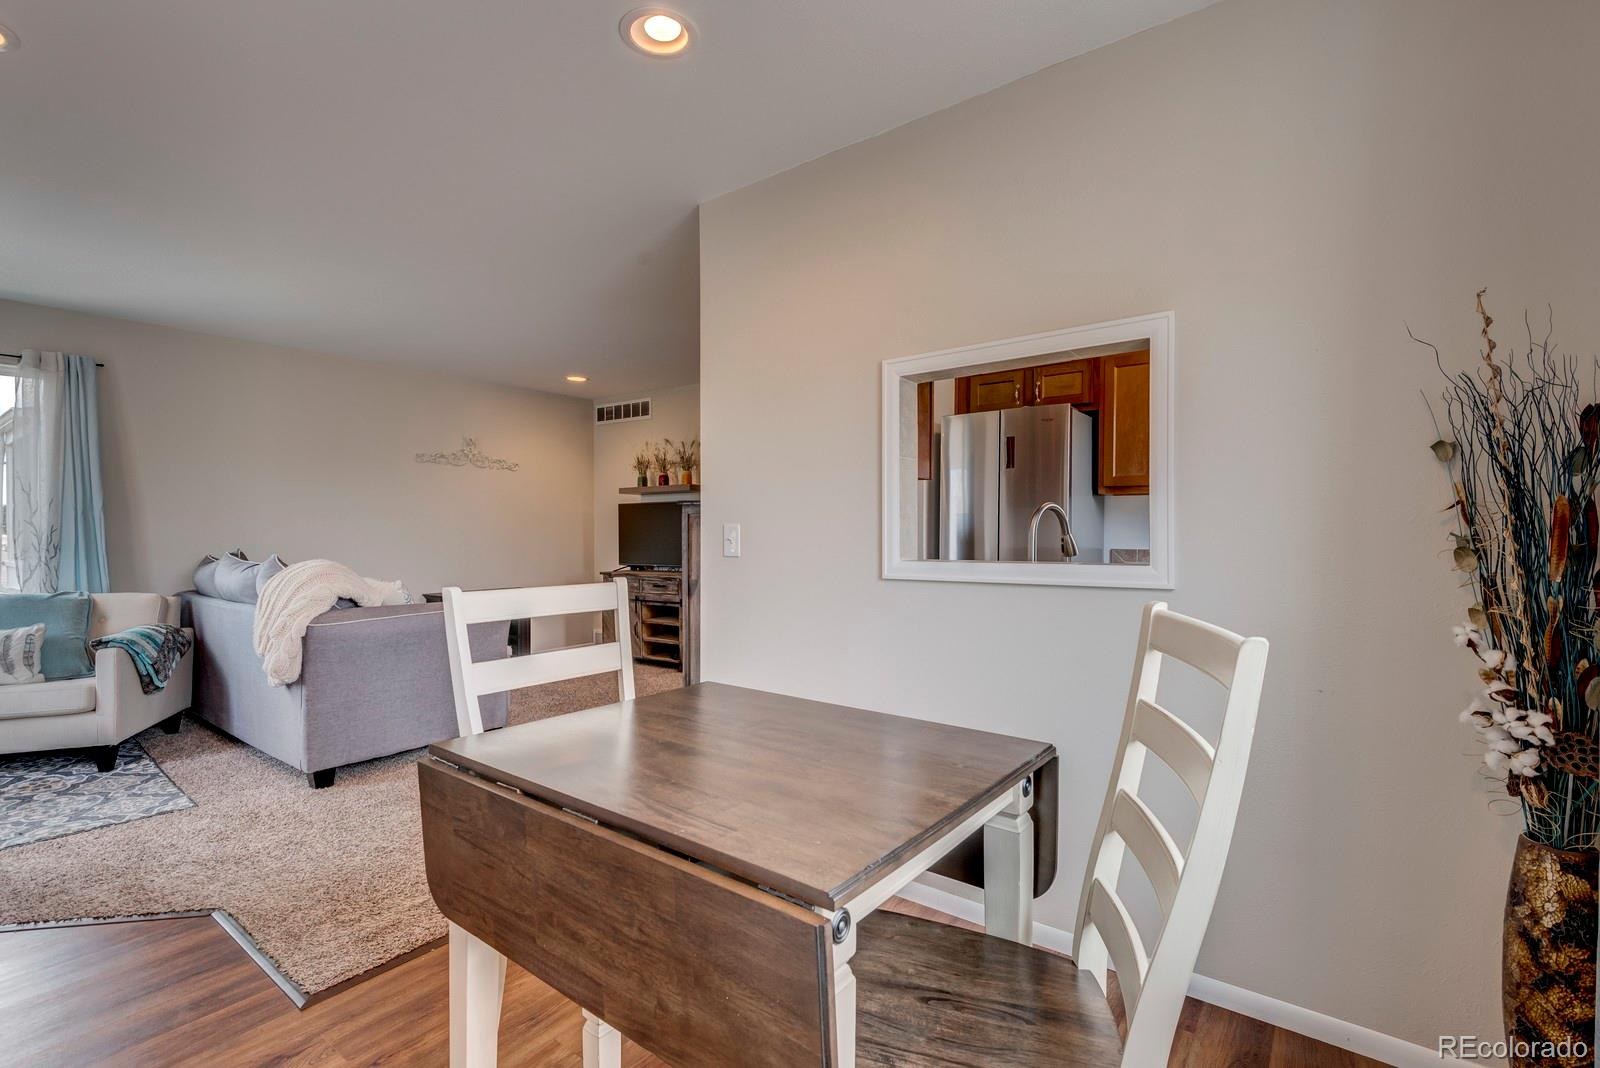 MLS# 2804784 - 6 - 8792 Chase Drive #16, Arvada, CO 80003